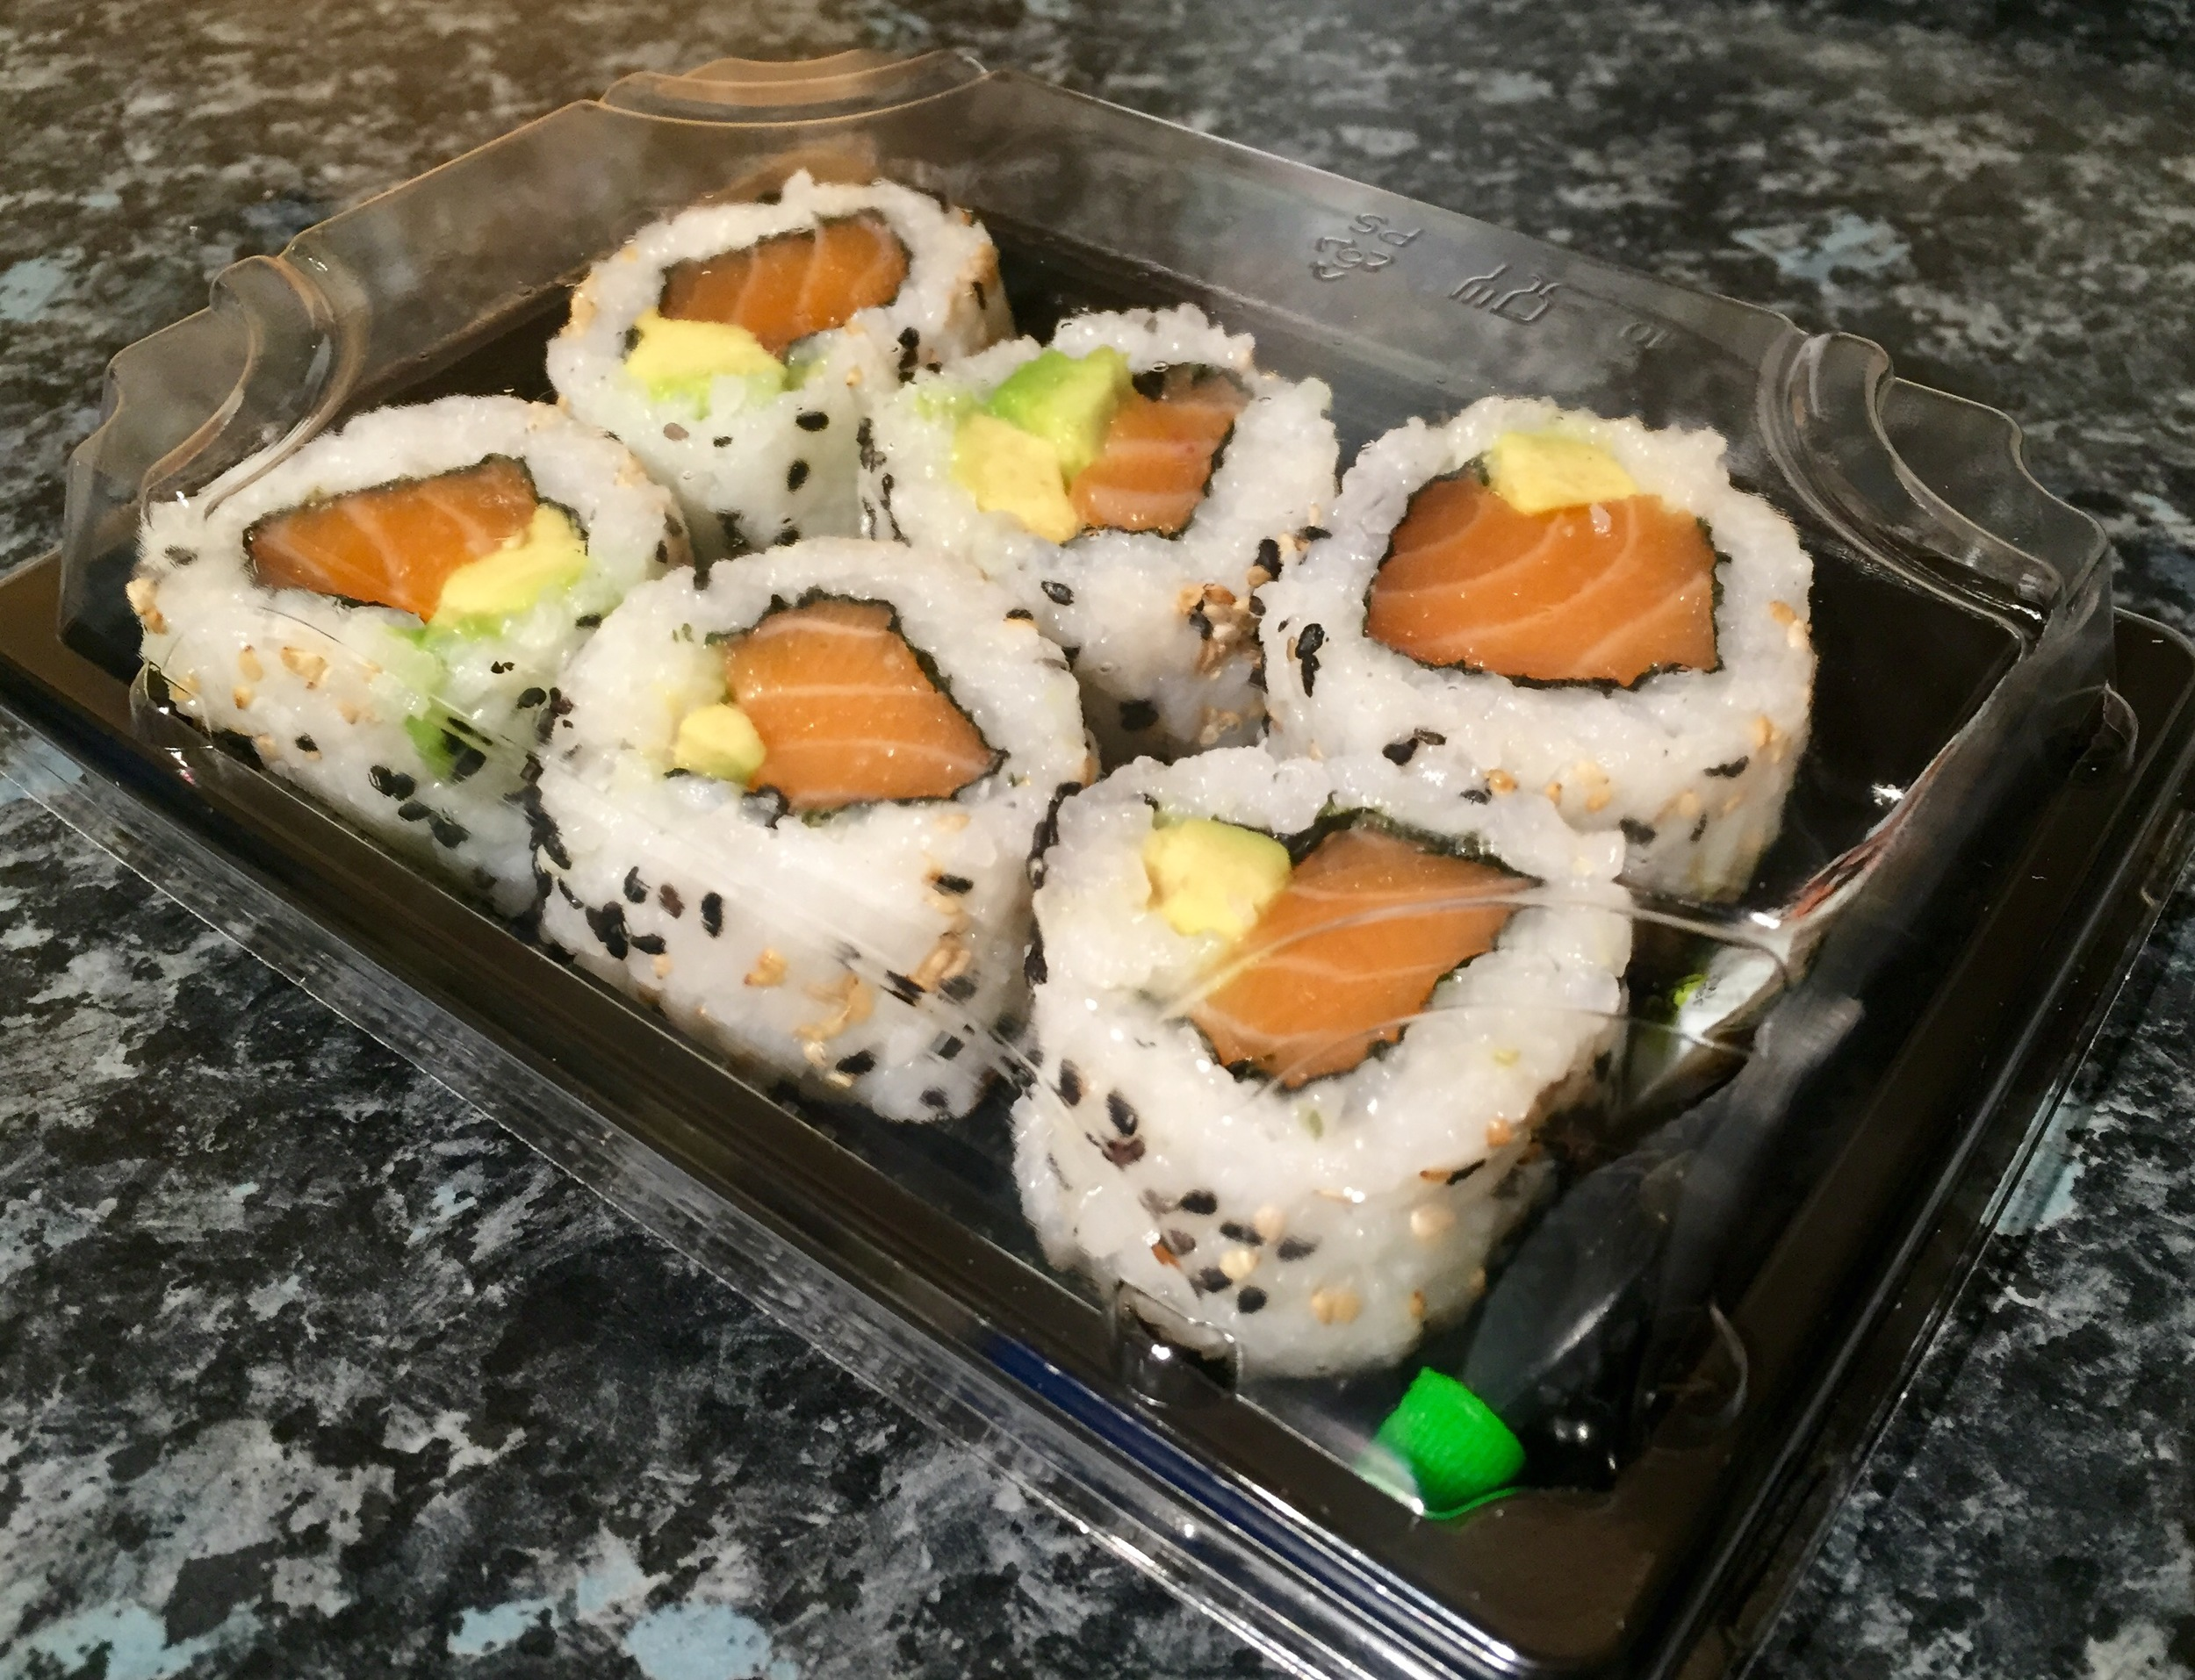 6 X SALMON & AVOCADO INSIDE OUT ROLLS - £6   Inside out rolls filled with salmon and avocado - japanese mayo available upon request